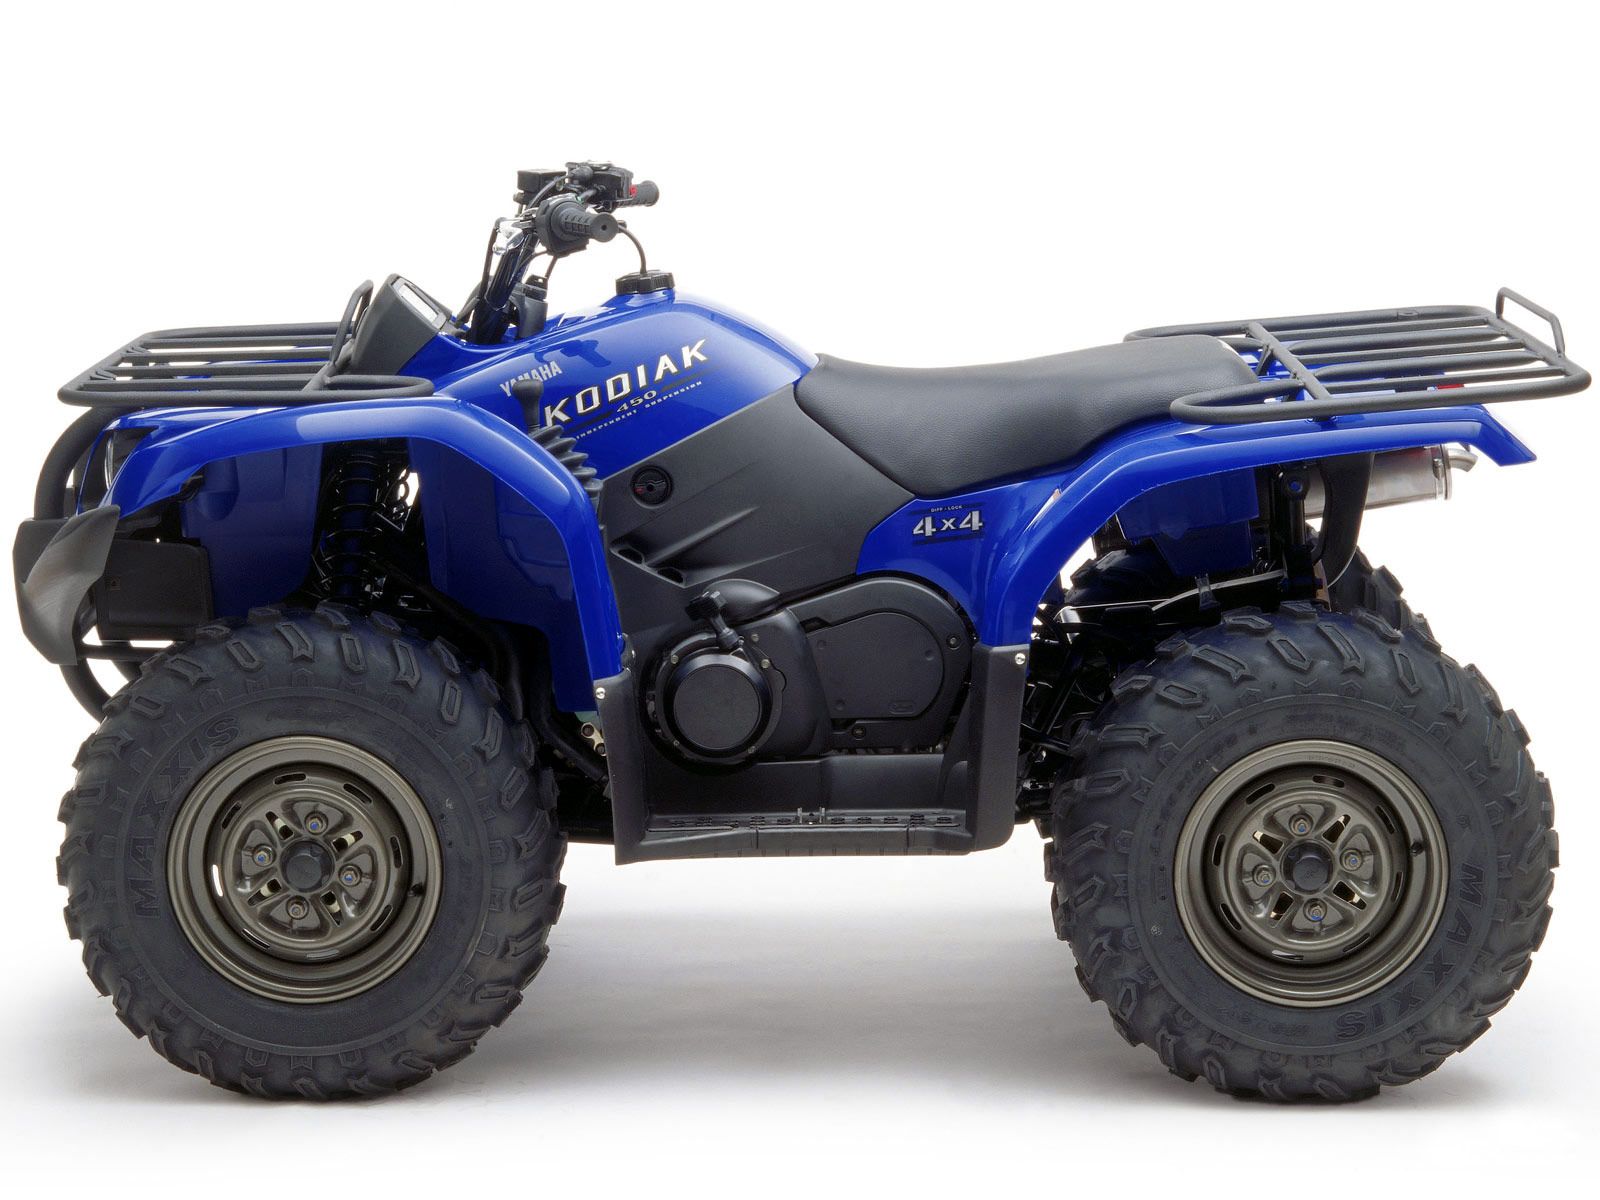 Wiring Diagram 2001 Yamaha Kodiak : Yamaha kodiak wiring diagram